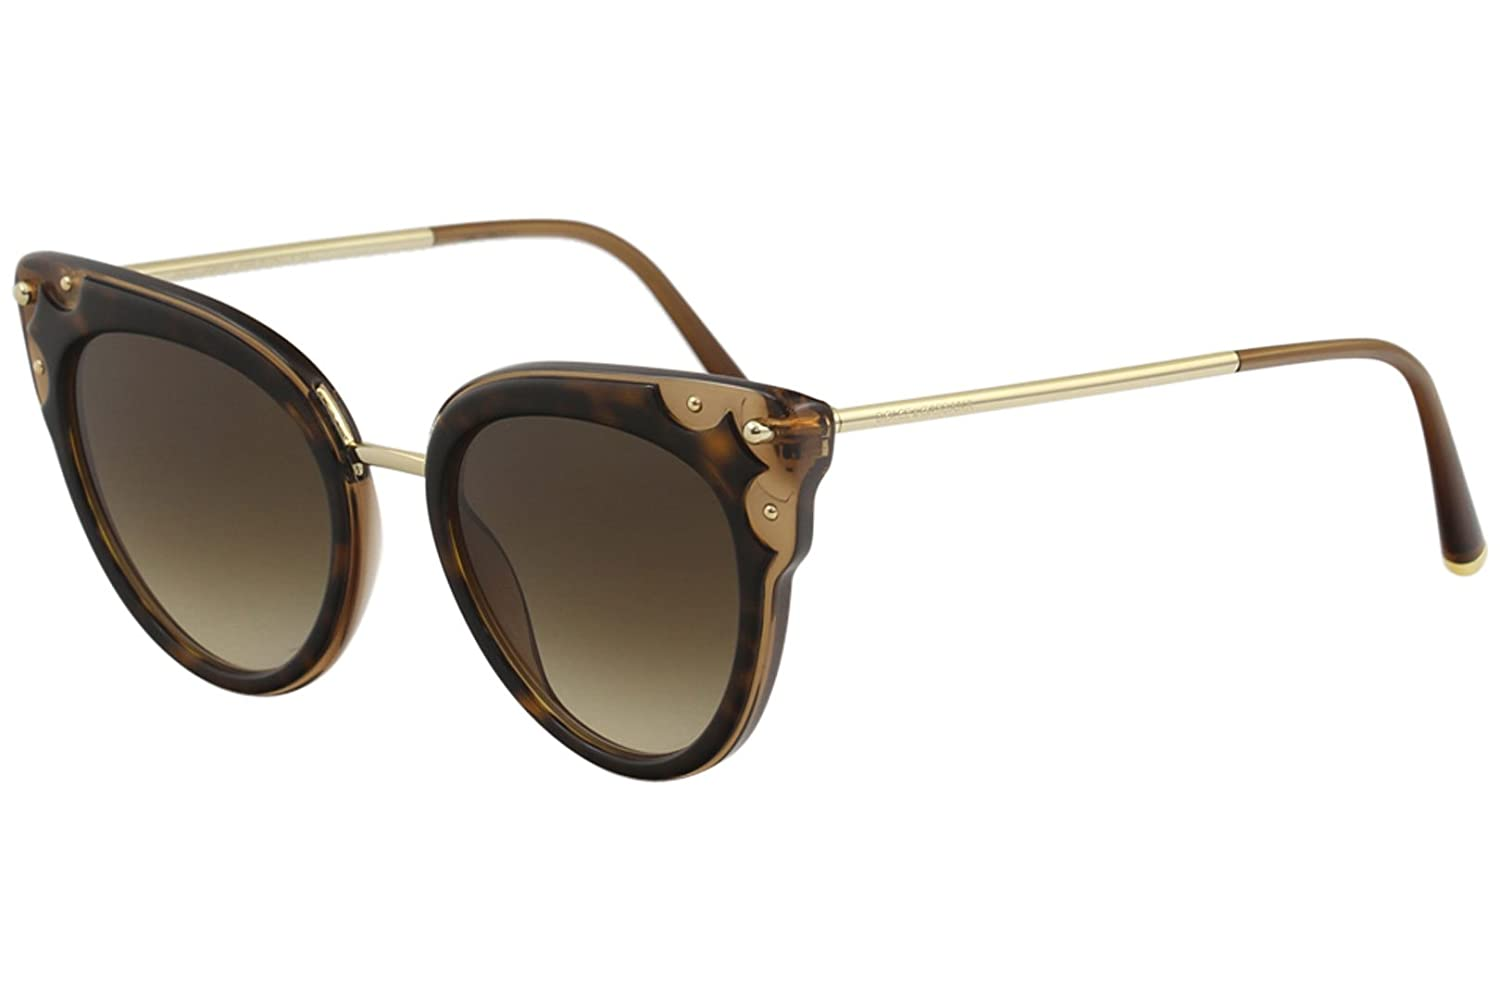 df63b2c279fb Amazon.com: Dolce & Gabbana D&G DG4340 DG/4340 3185/13 Havana/Brown Cat Eye  Sunglasses 51mm: Clothing